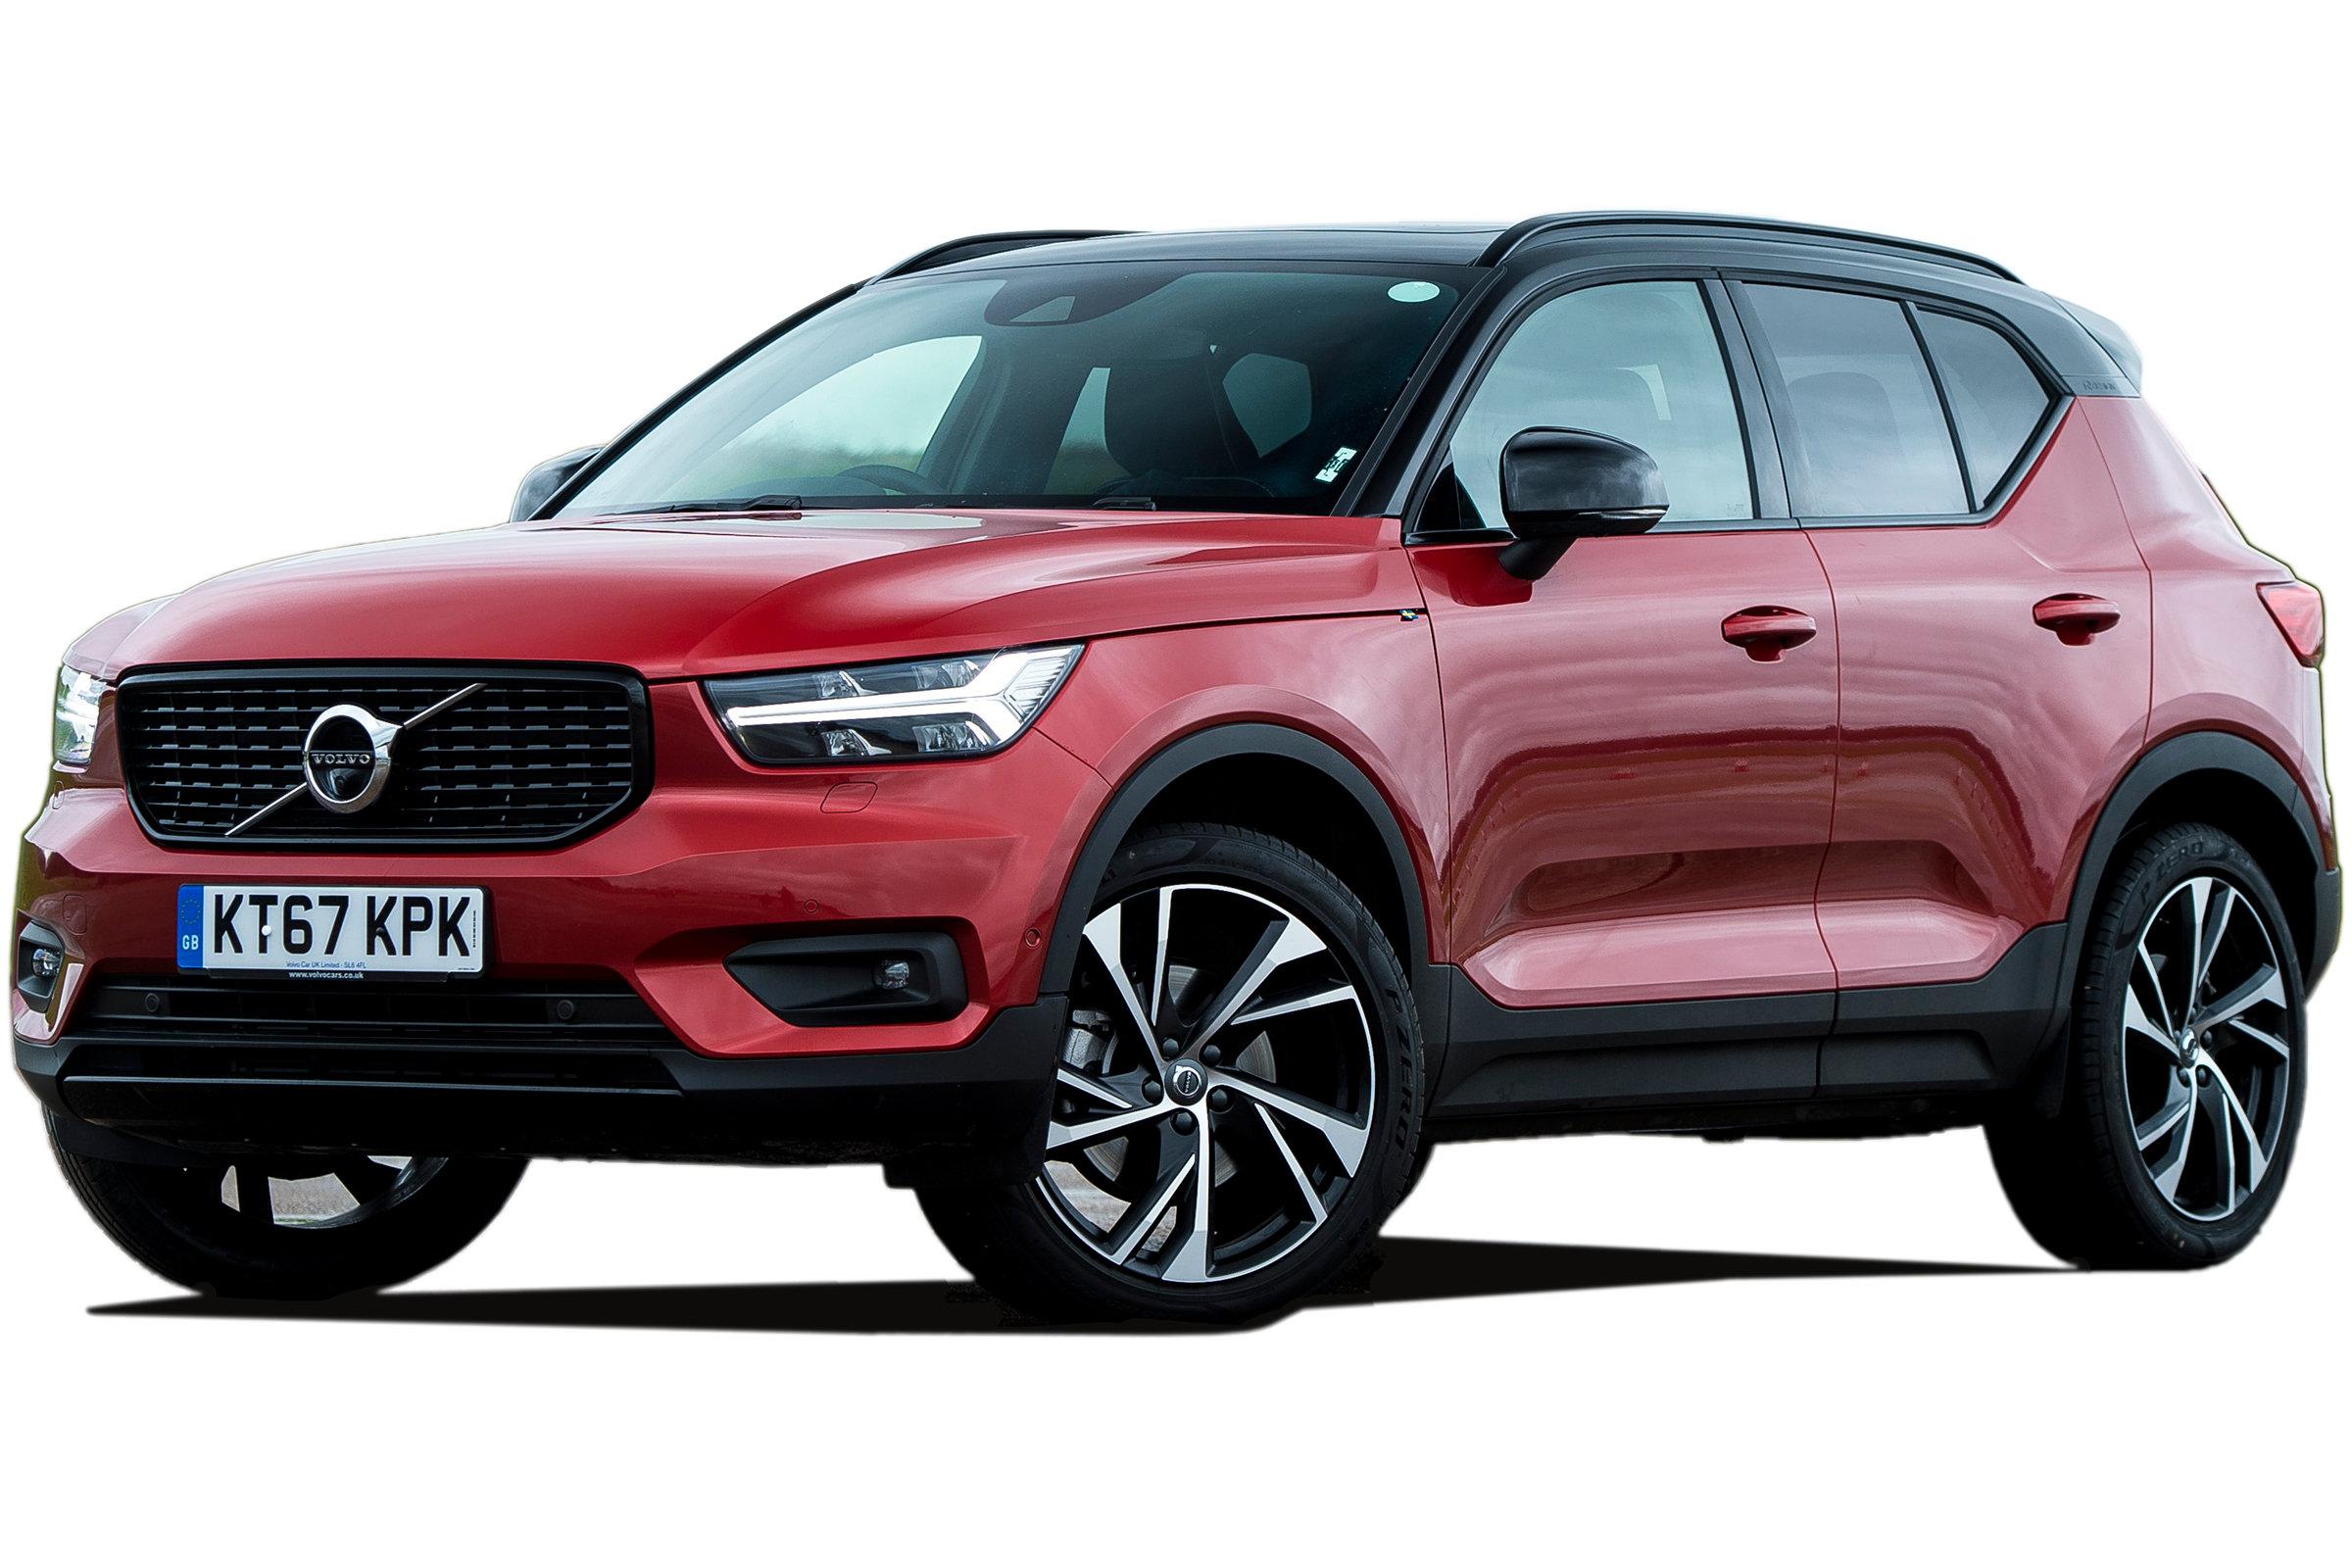 volvo xc40 suv - reliability & safety 2020 review   carbuyer